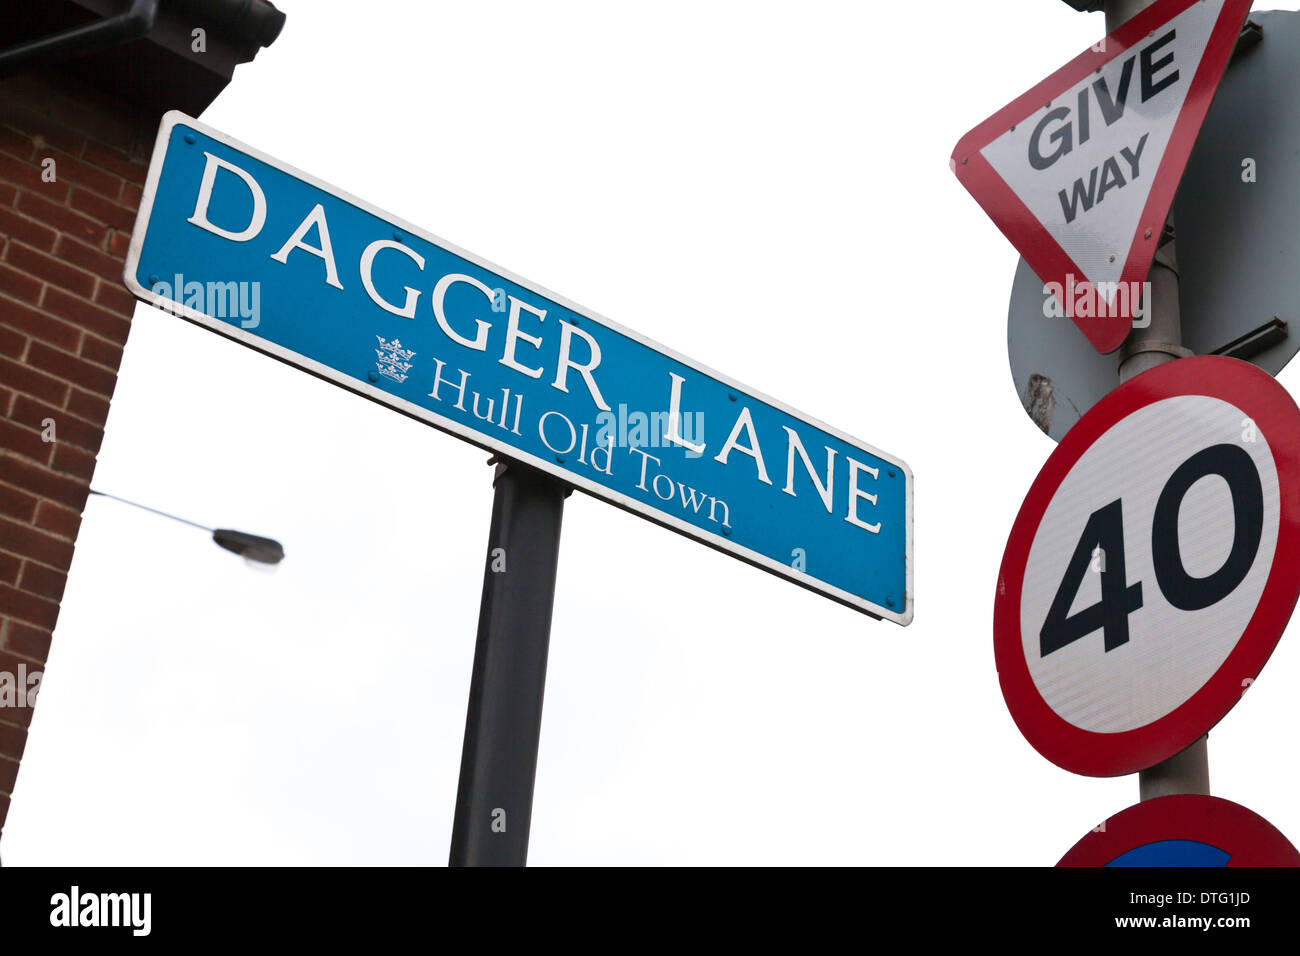 Dagger Lane road sign Kingston Upon hull East Riding city centre, East Yorkshire, England, UK GB signs photos pictures of - Stock Image